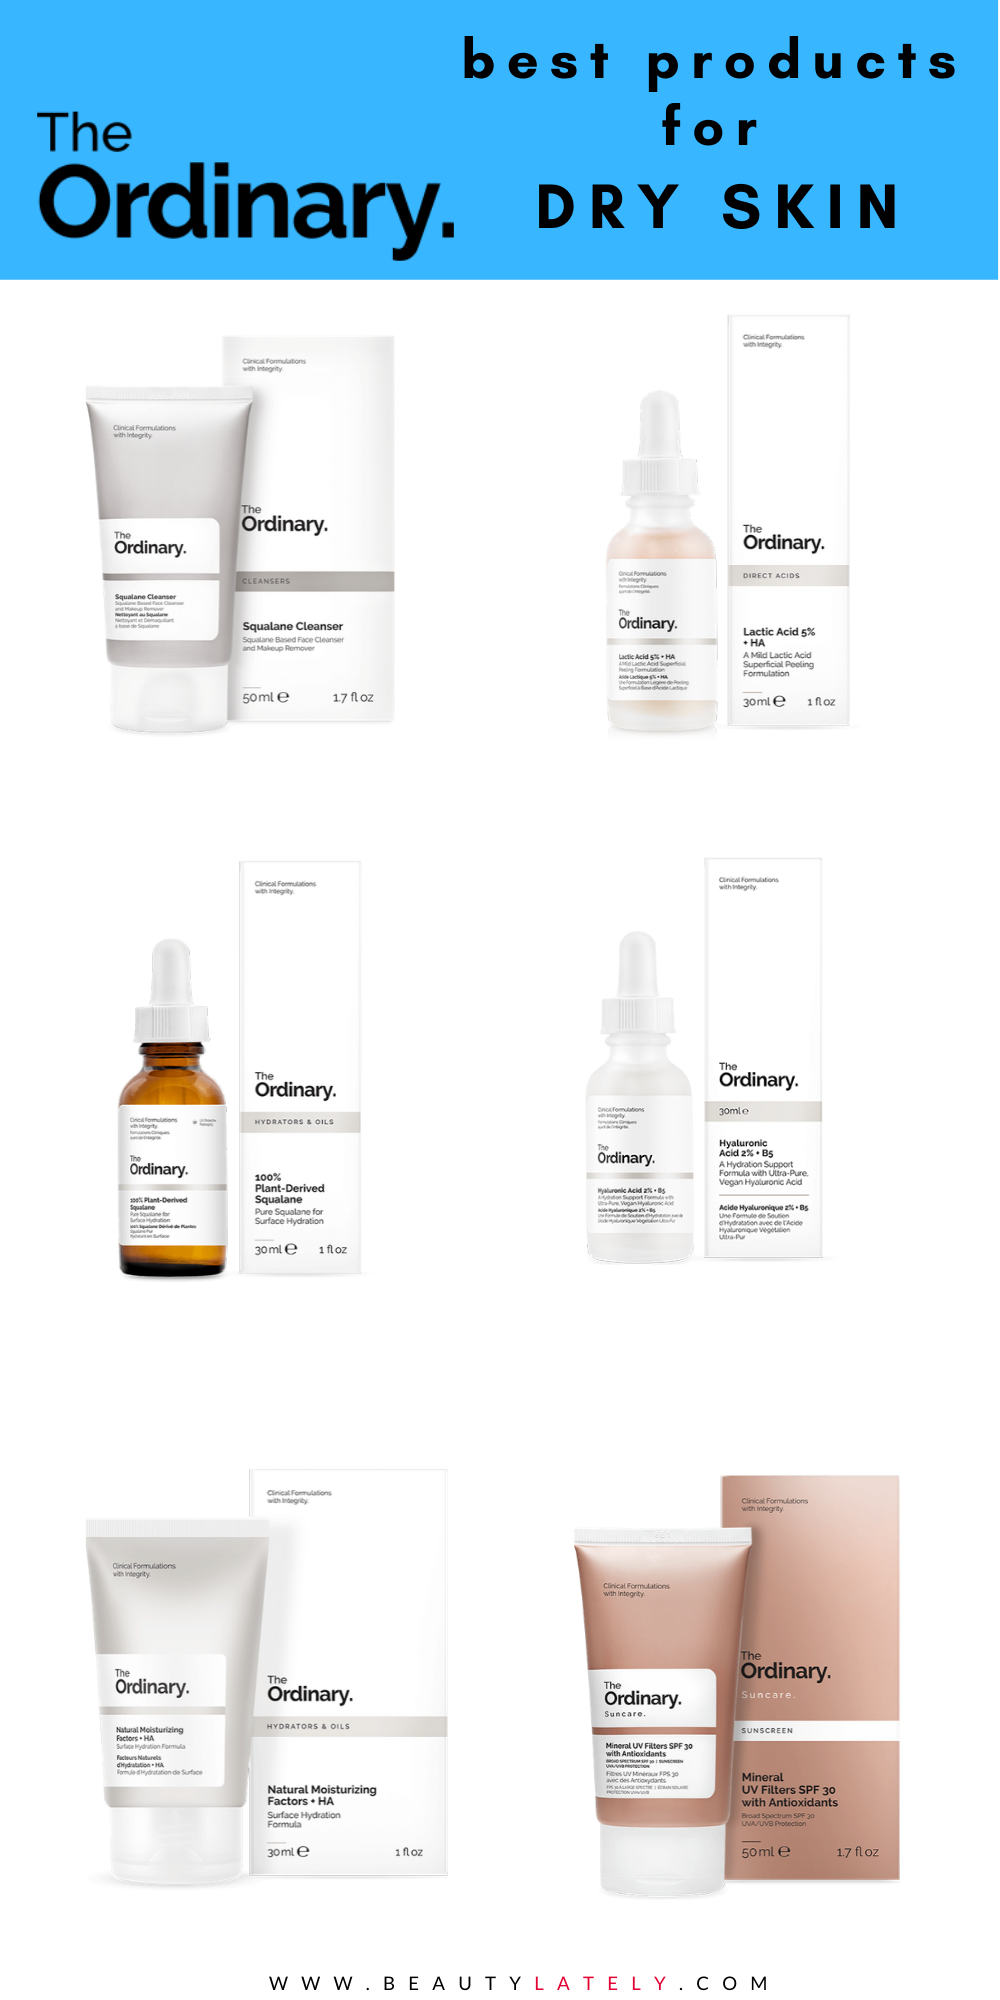 The Ordinary Shopping Guide For Dry Skin Dry Skin Routine The Ordinary For Dry Skin Dry Skin Care Routine